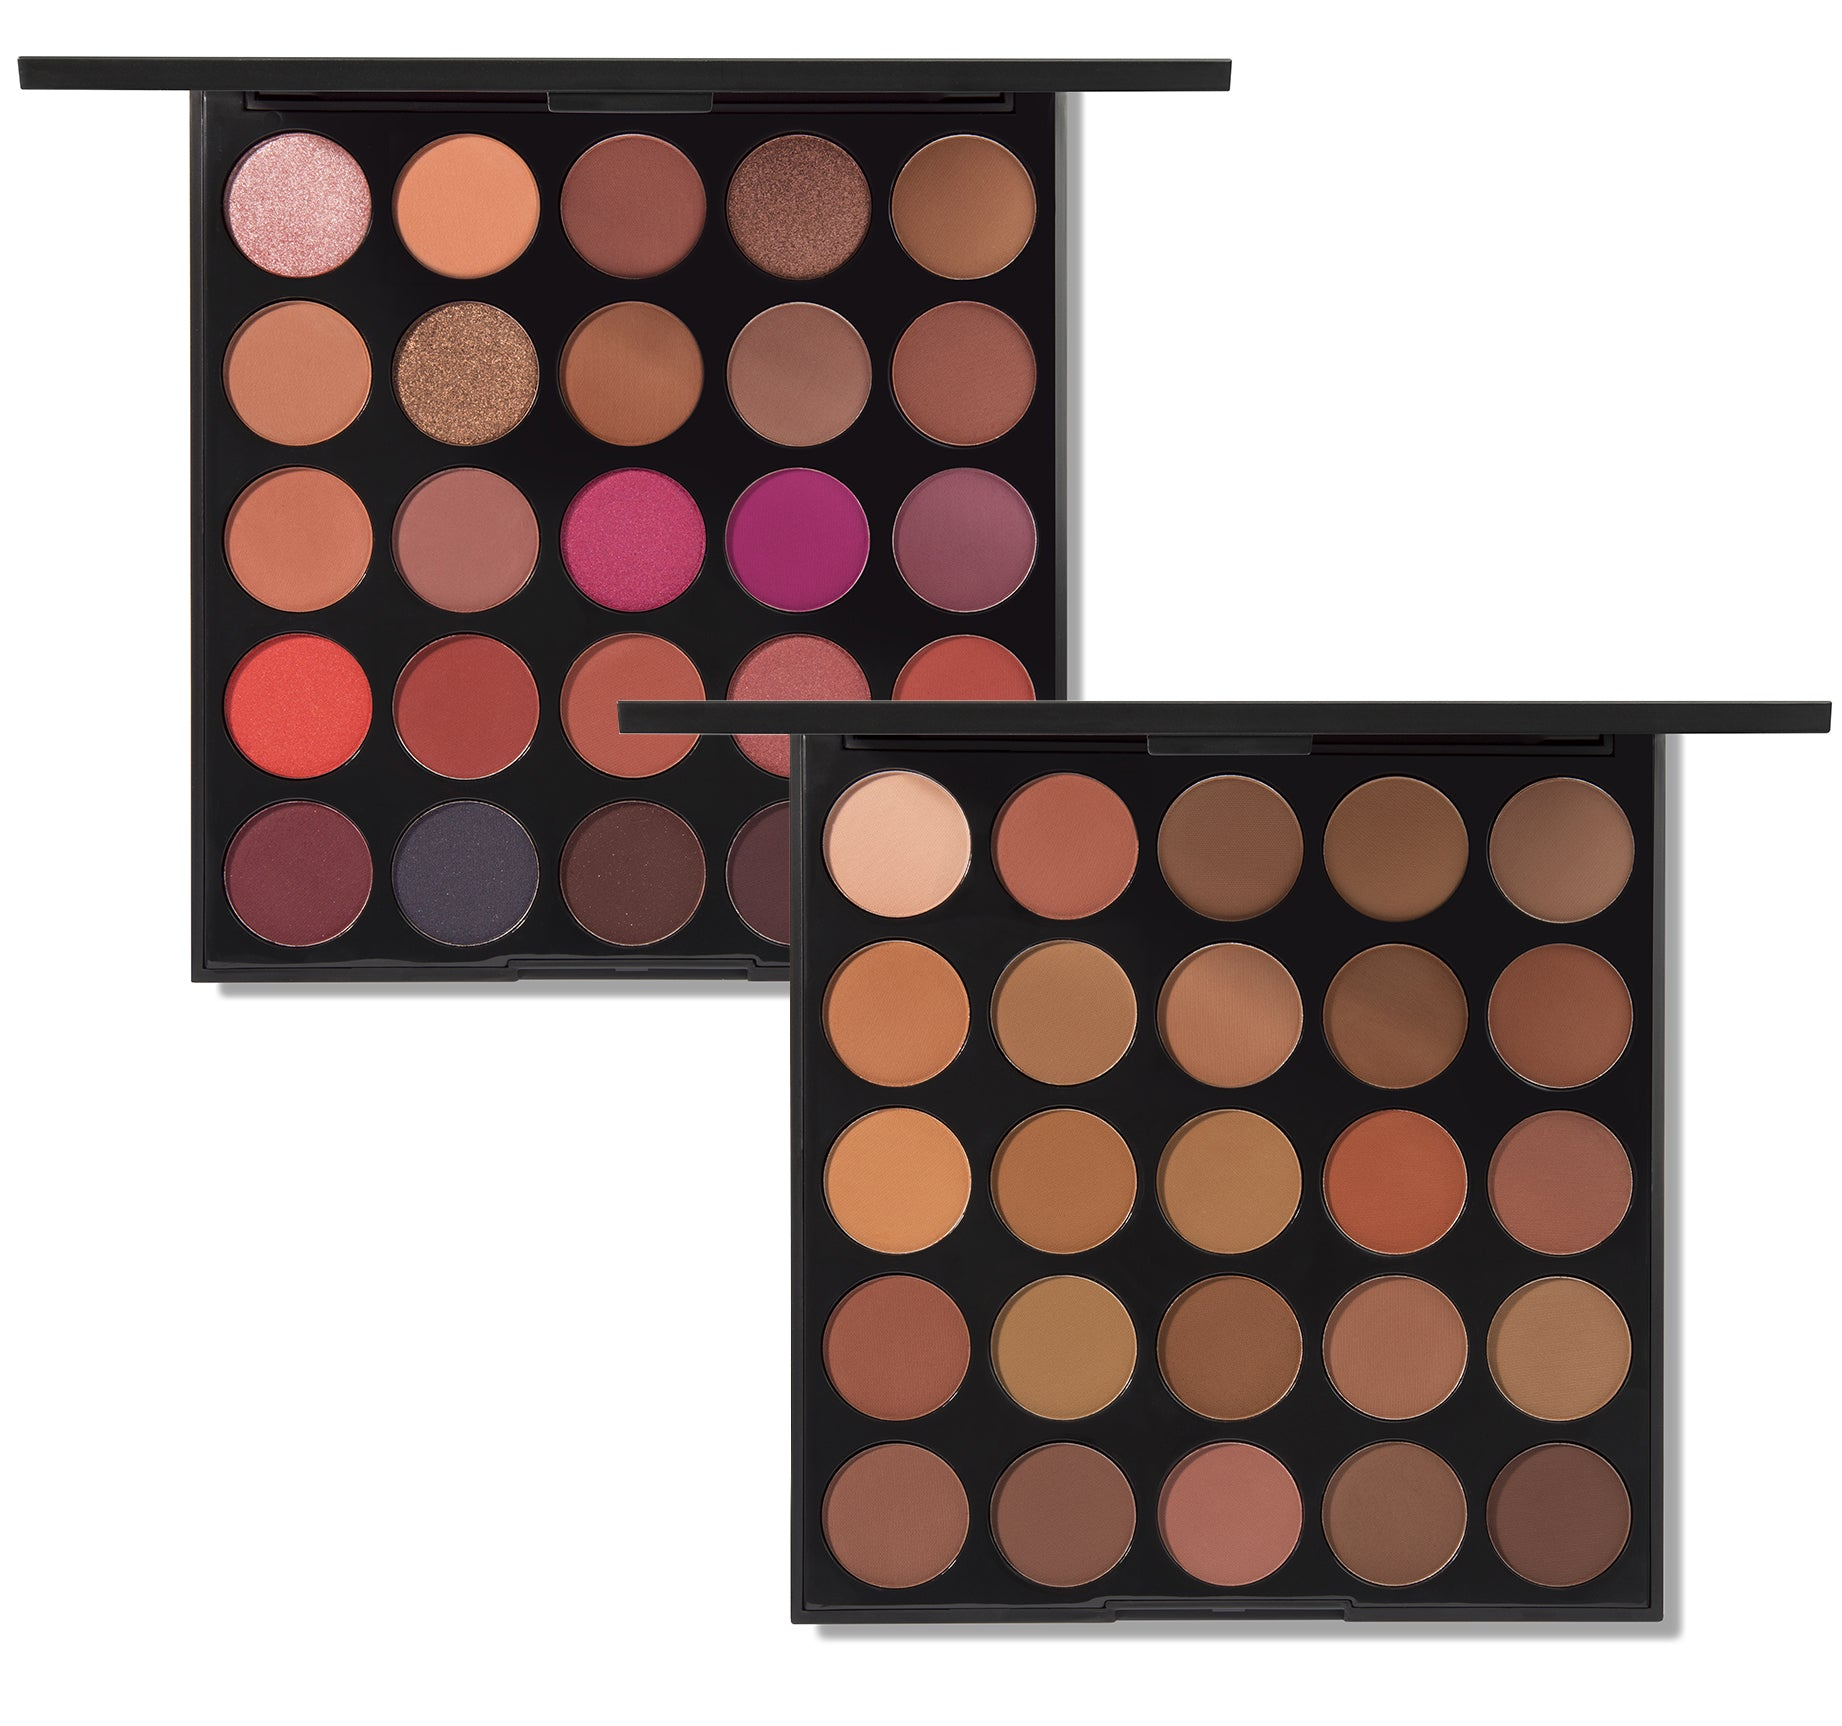 25C HEY GIRL HEY & 25D OH BOY ARTISTRY PALETTE BUNDLE, view larger image